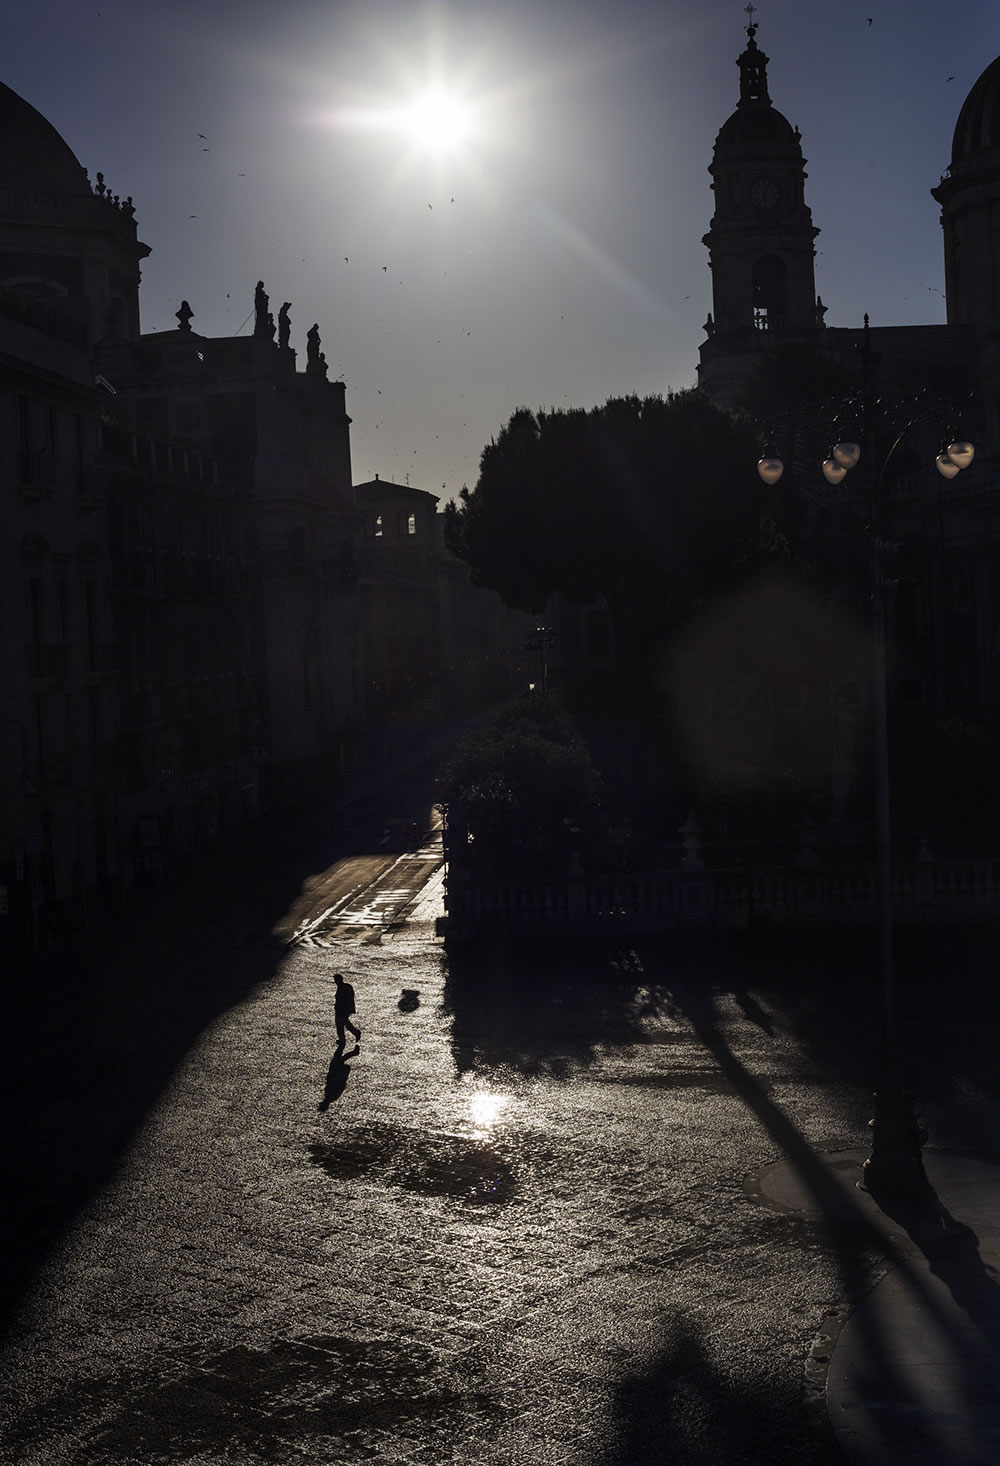 At 7am, through the Baroque shadows in the Piazza del Duomo in Catania, Sicily, the sun is already high and hot.